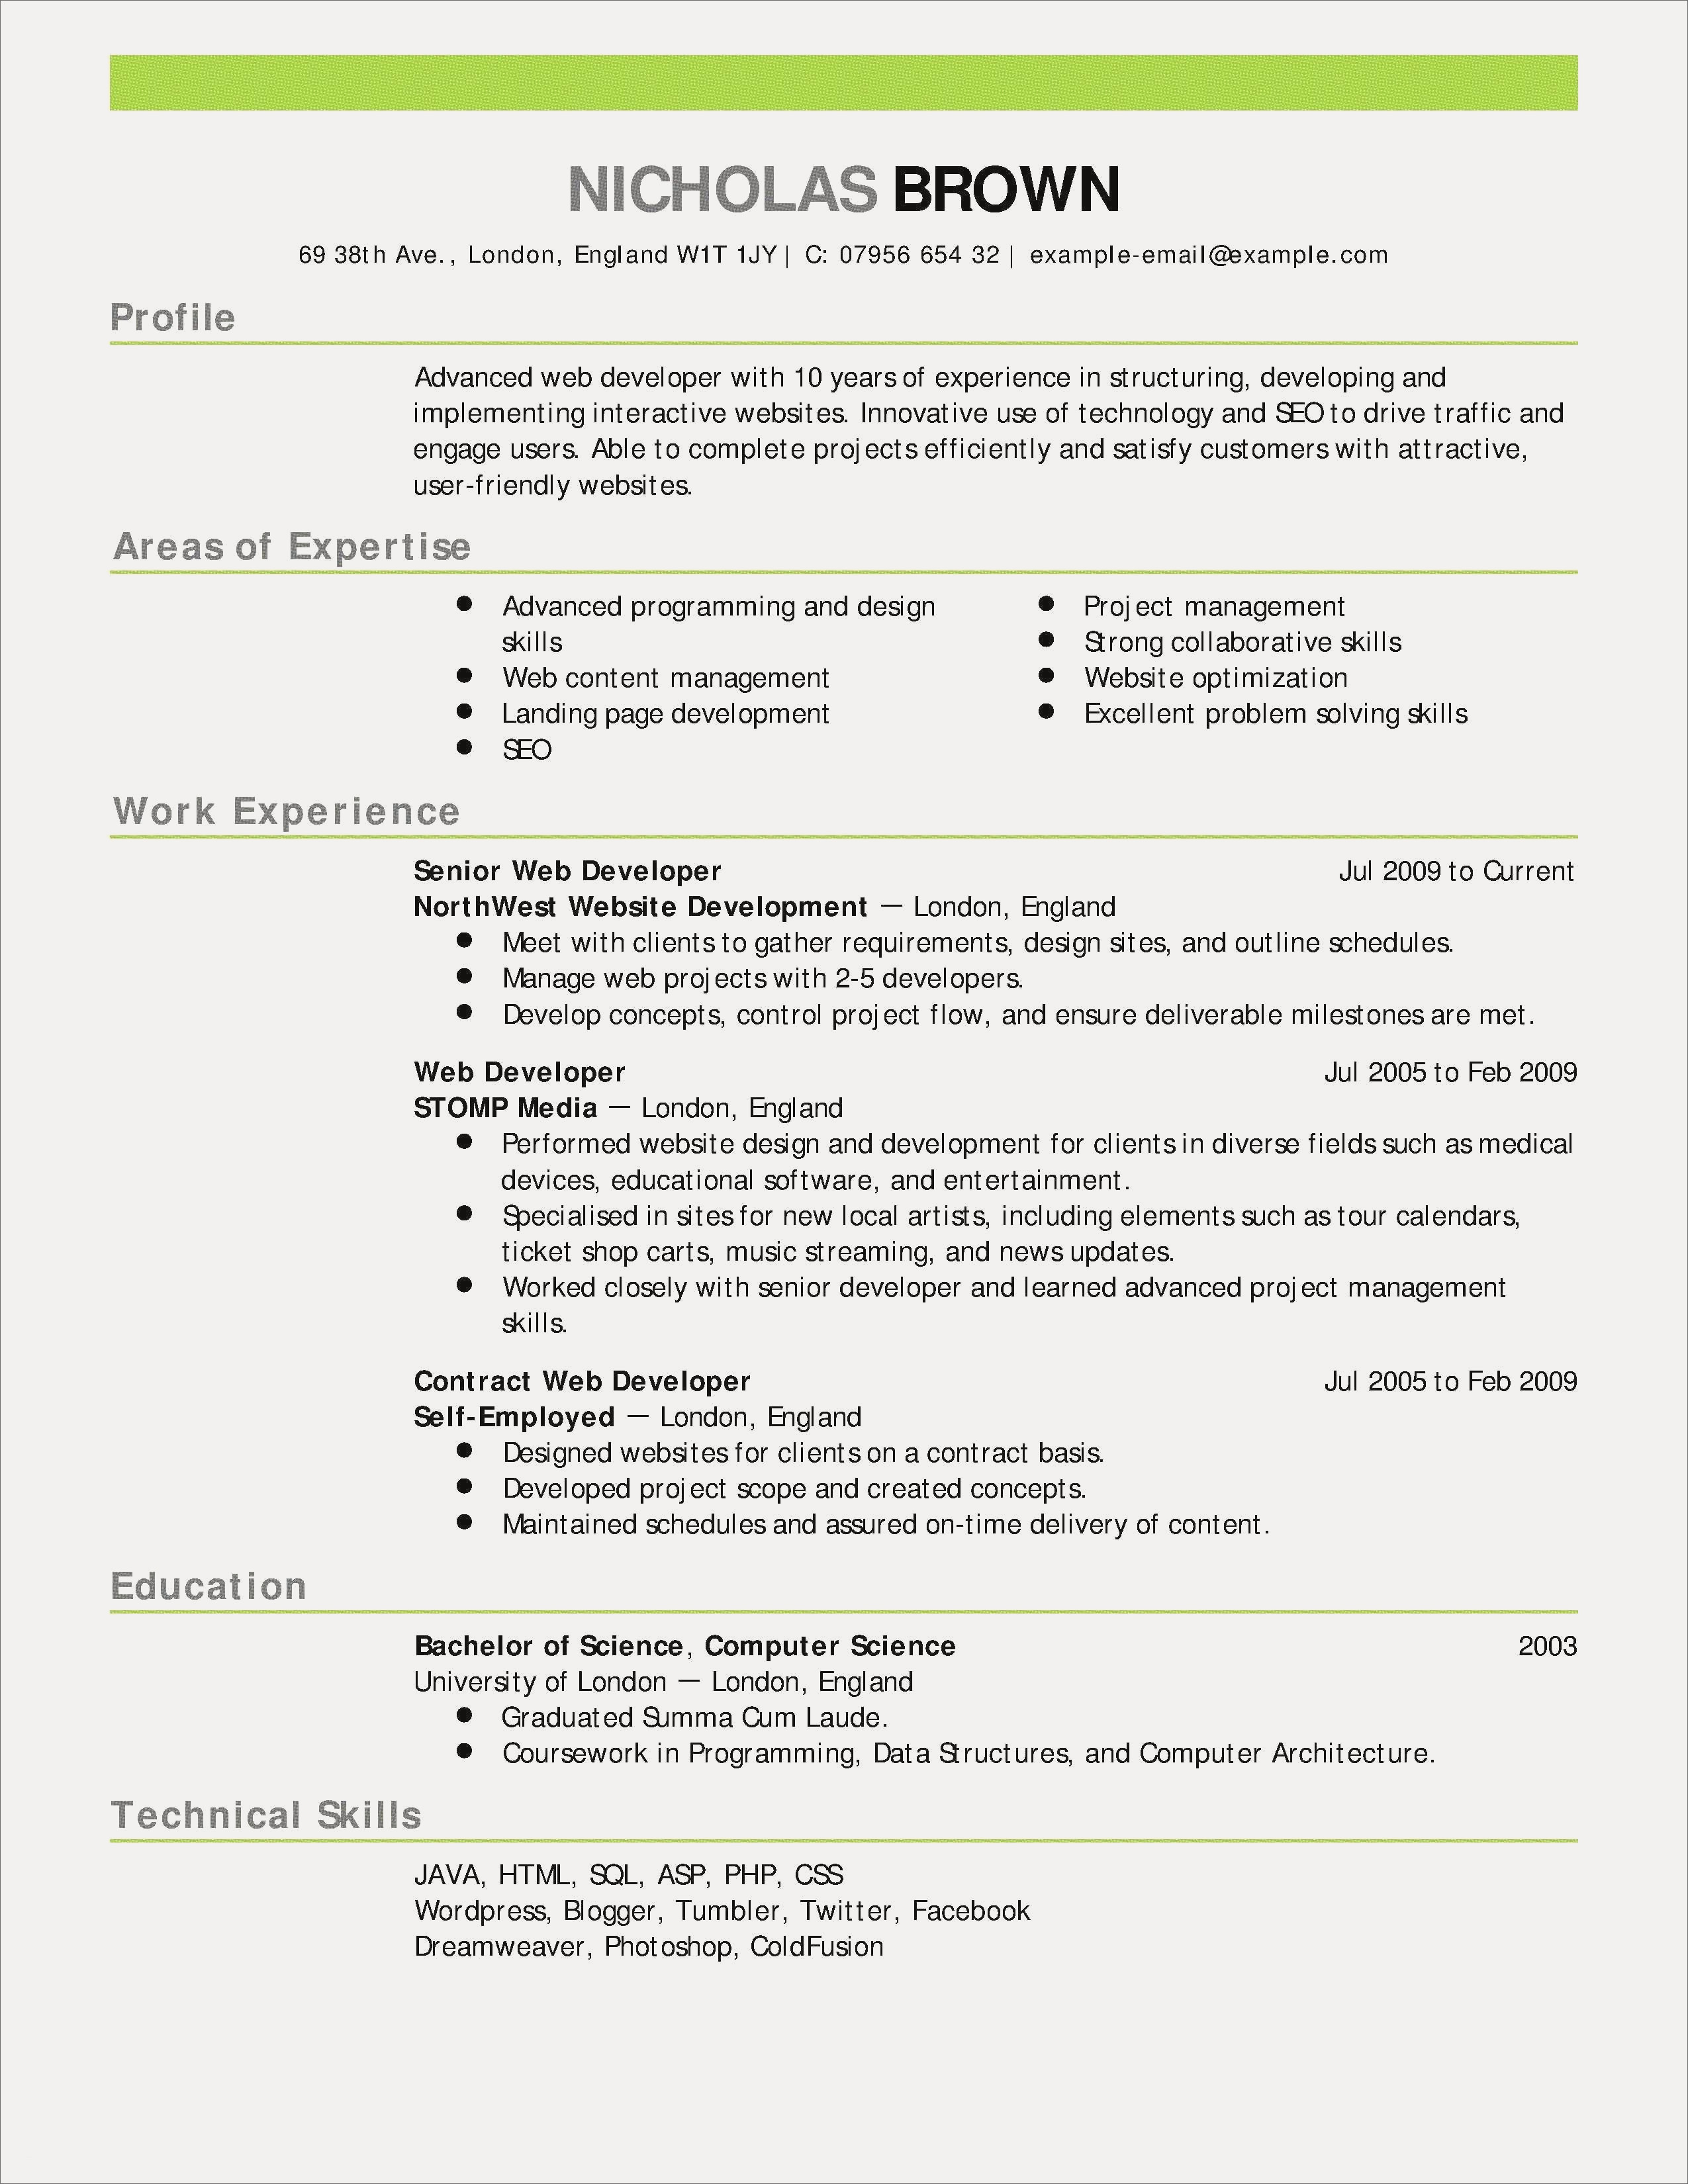 Resume Introduction - Sales Resumes Luxury Sales Resumes Examples Beautiful Resume